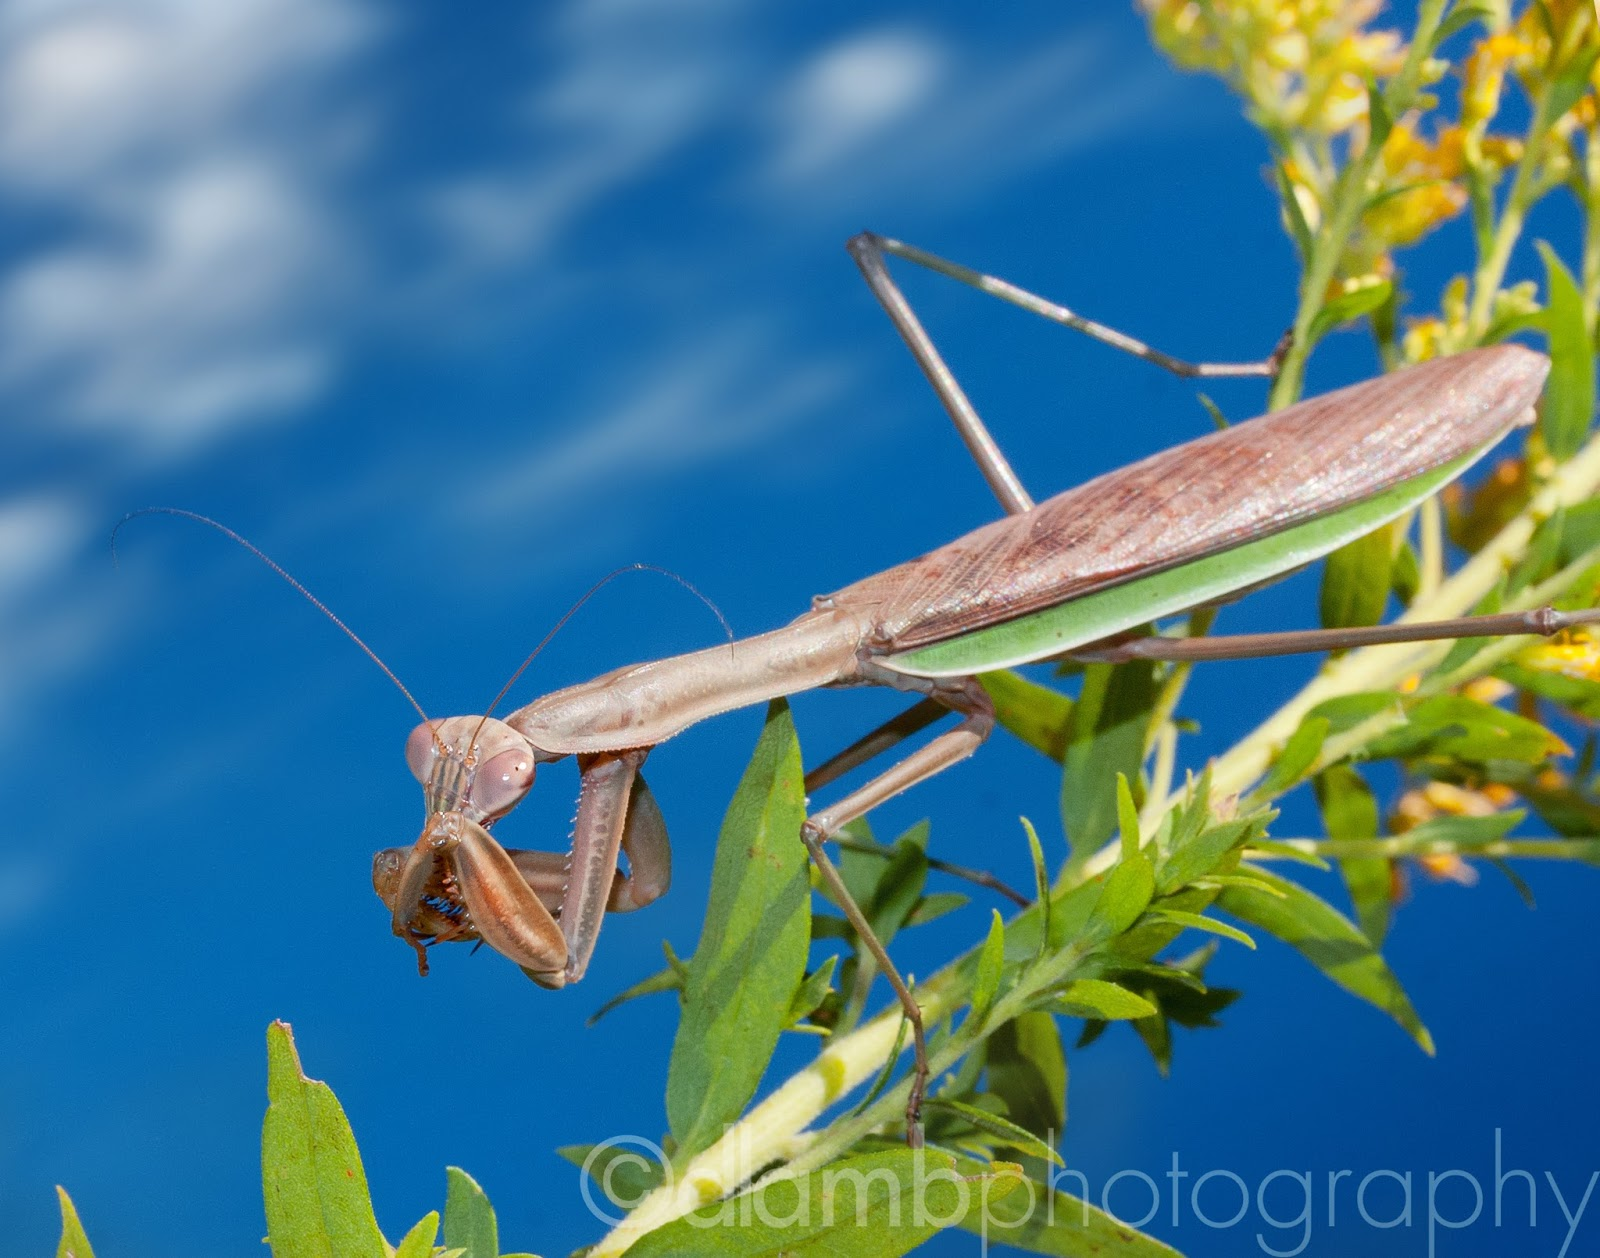 http://david-lamb.artistwebsites.com/featured/shy-mantis-on-a-sunny-day-david-lamb.html